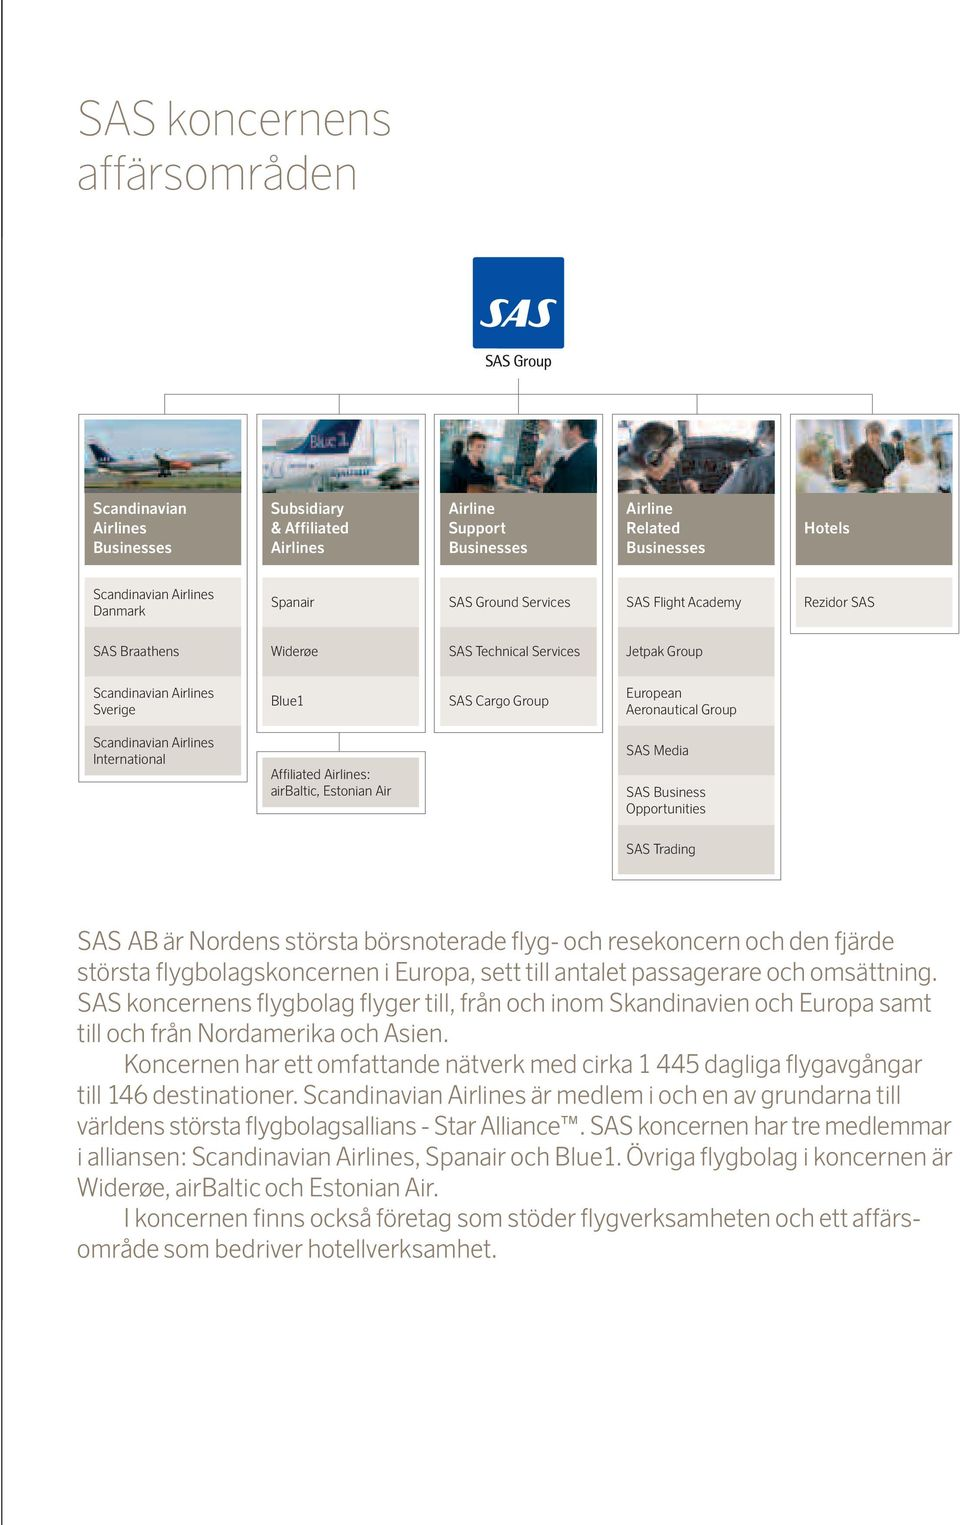 Airlines International Affiliated Airlines: airbaltic, Estonian Air SAS Media SAS Business Opportunities SAS Trading SAS AB är Nordens största börsnoterade flyg- och resekoncern och den fjärde